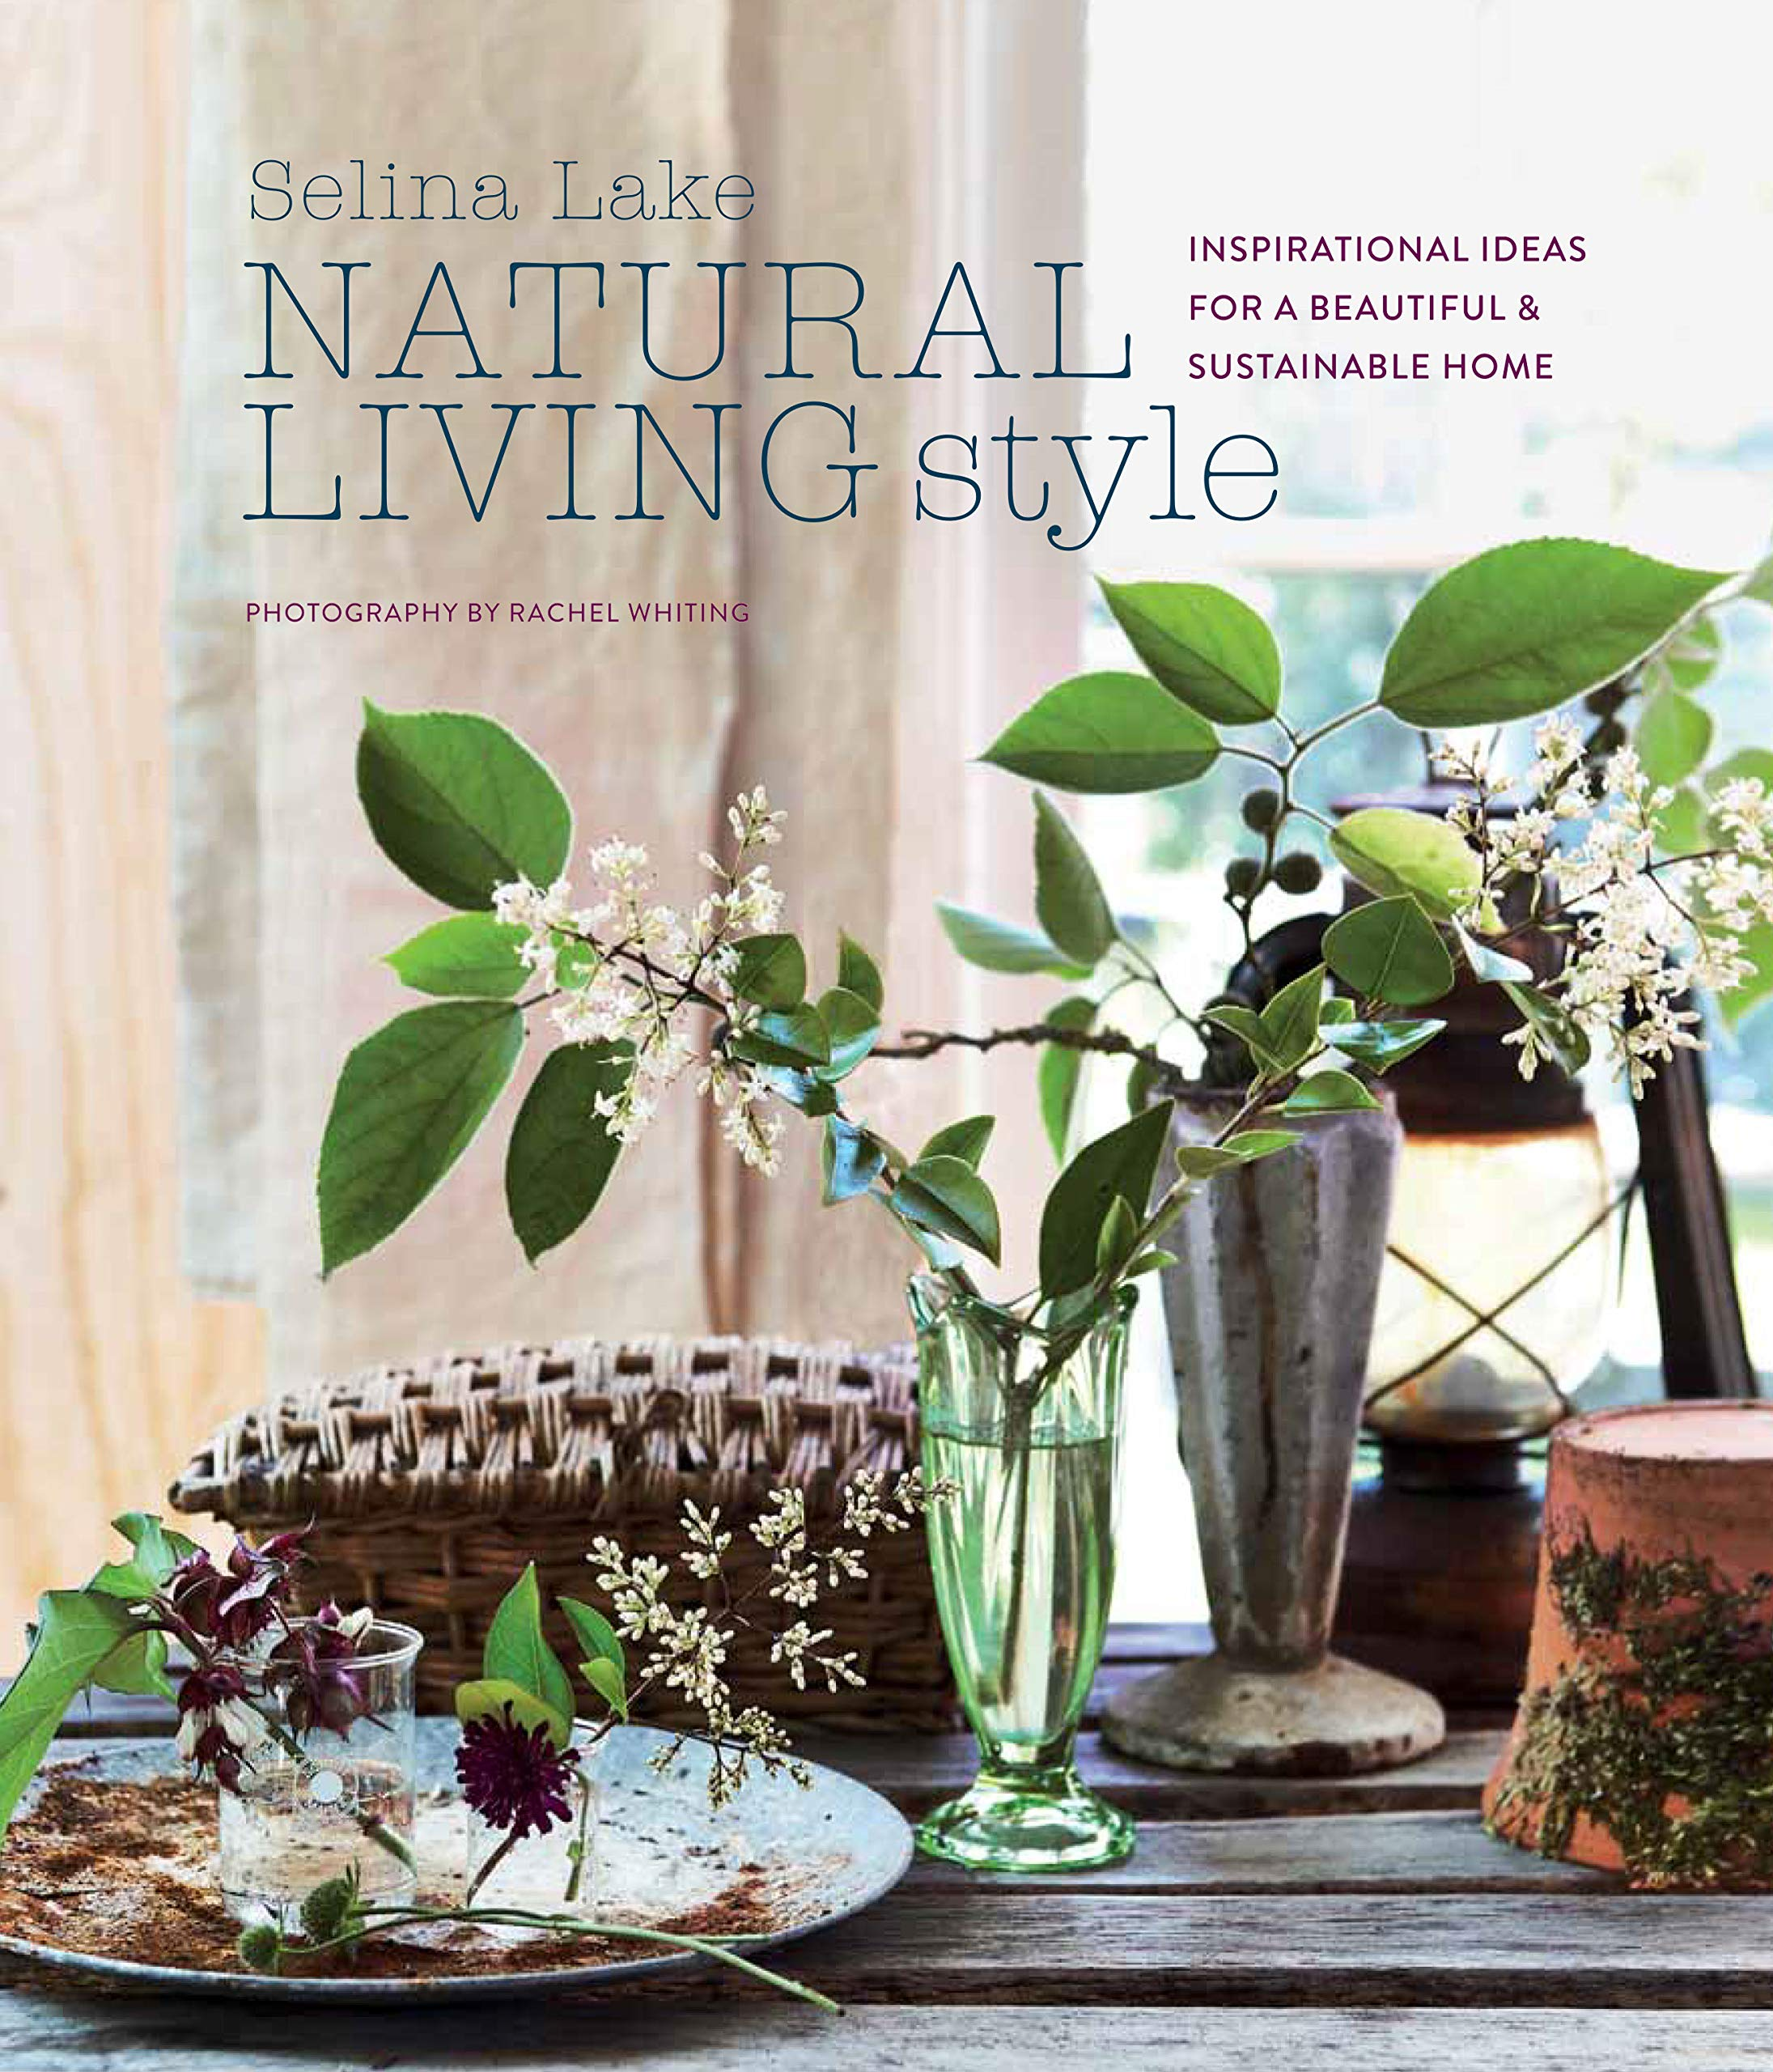 Natural Living Style Inspirational sustainable product image